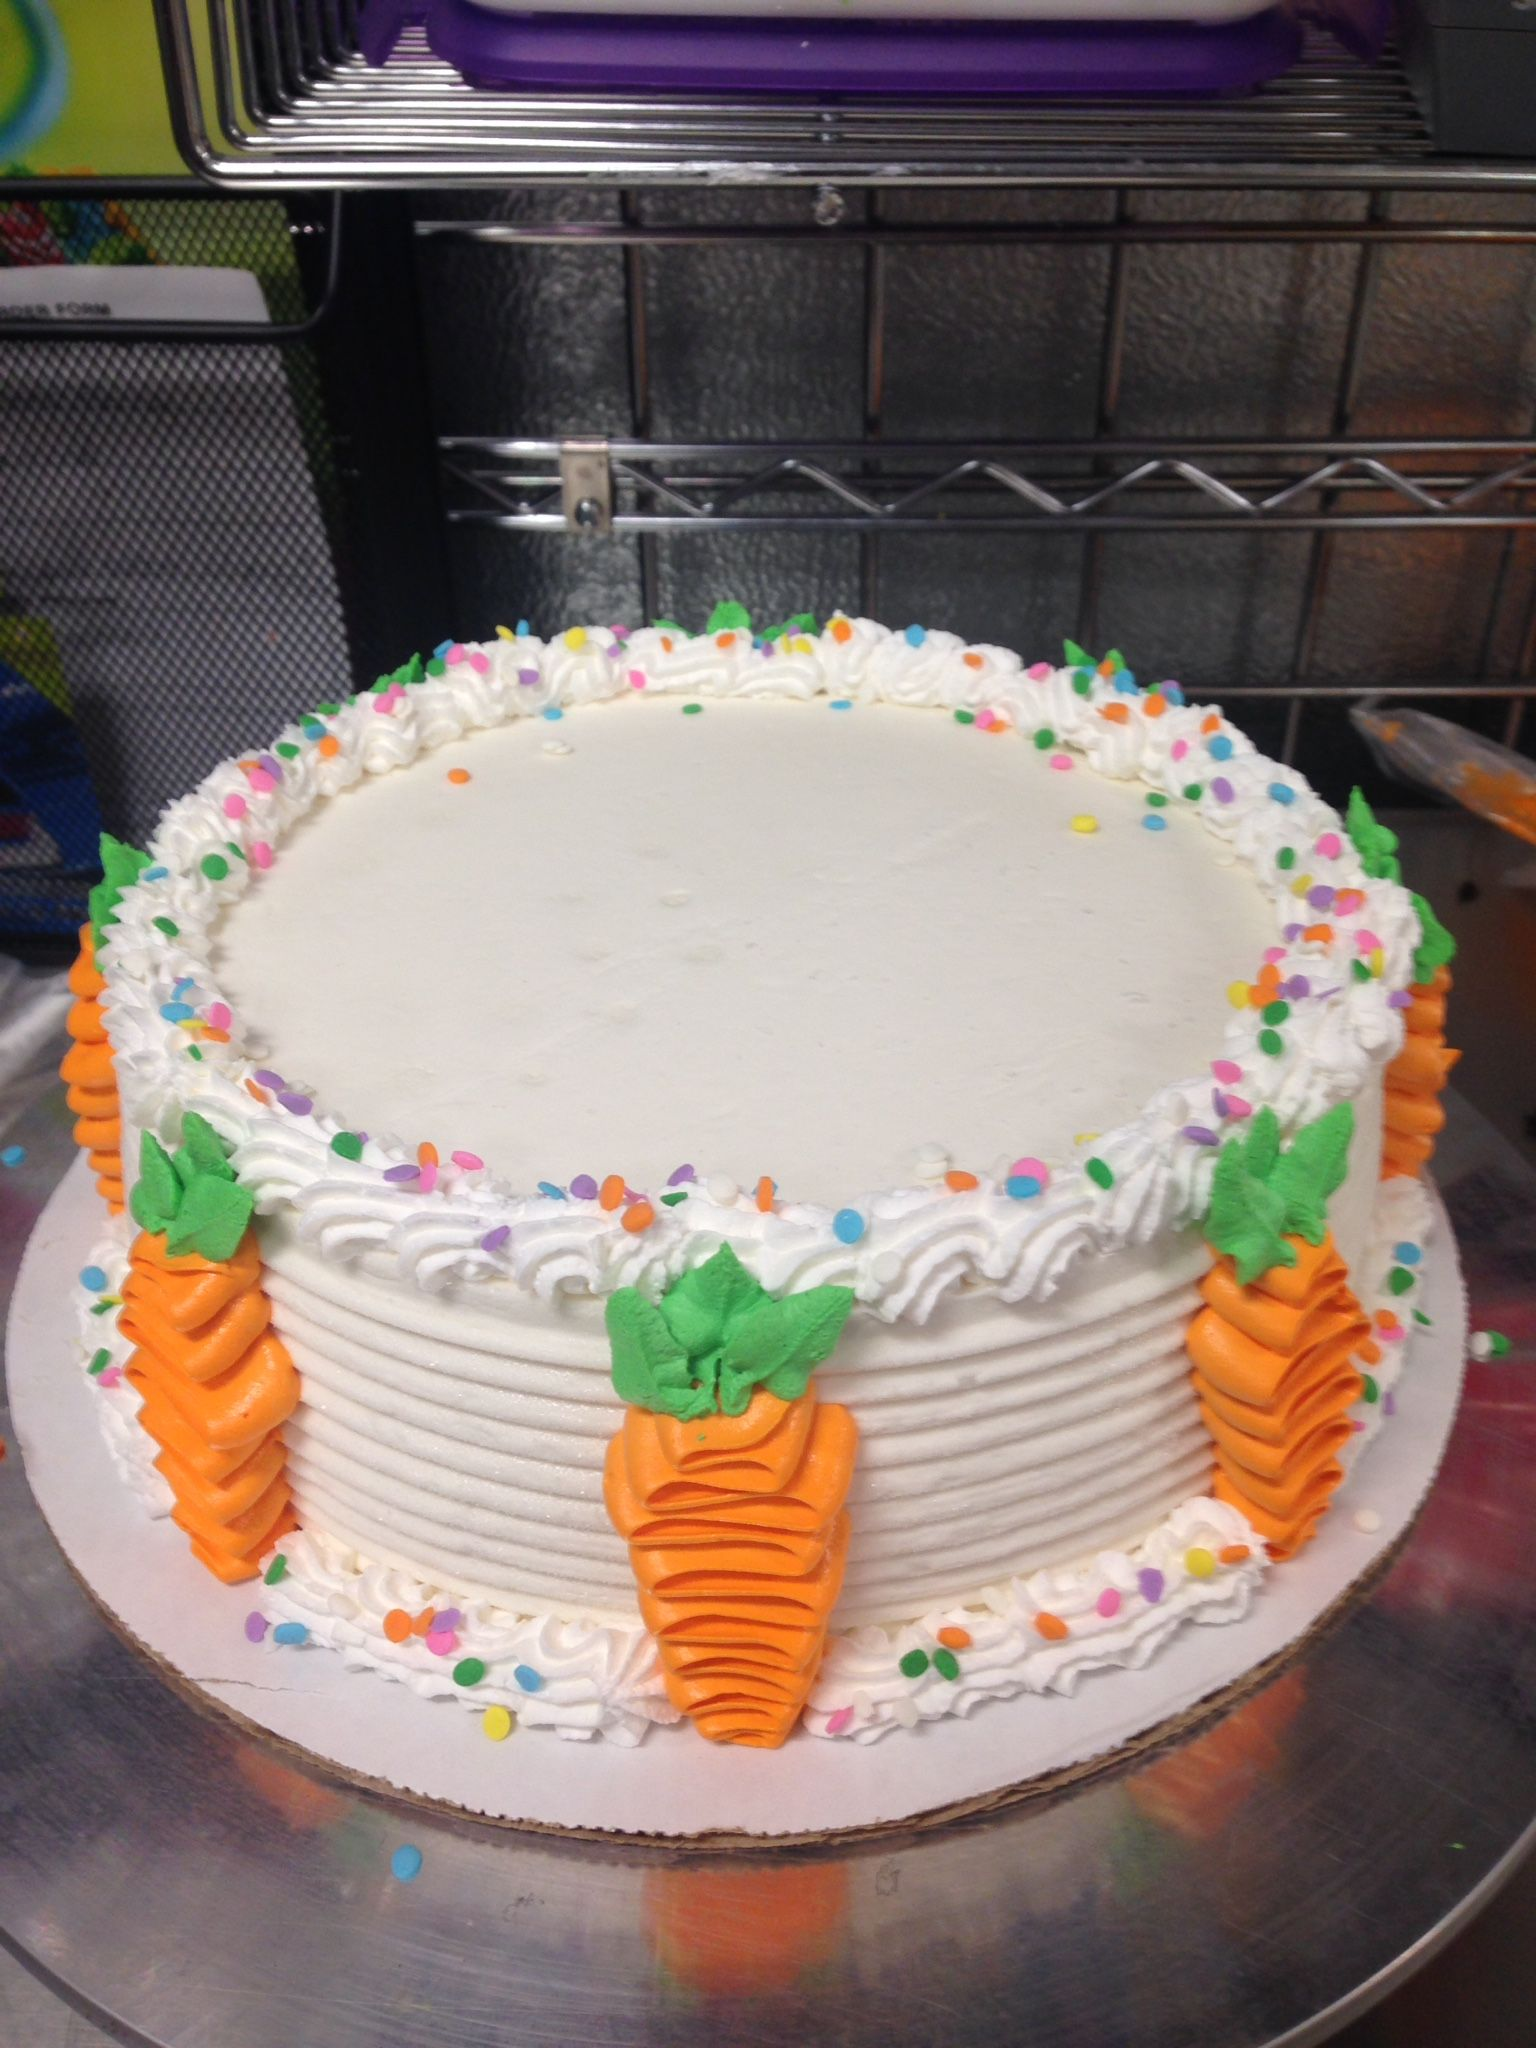 Easter ice cream cake with carrots | Cake ideas | Pinterest ...